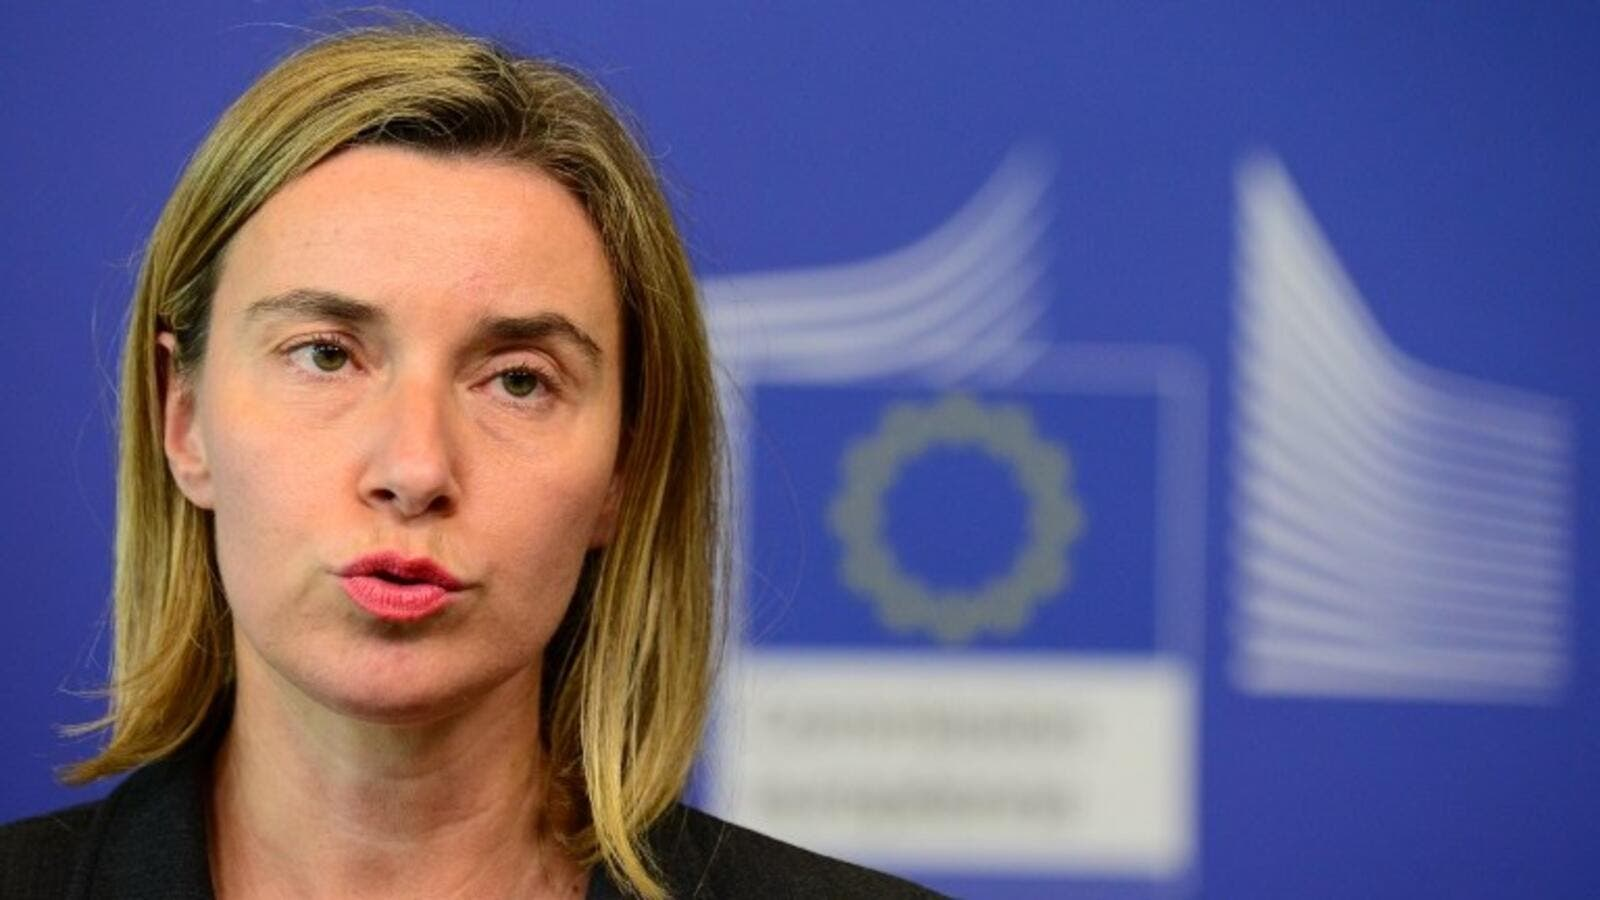 EU foreign policy chief Federica Mogherini at EU headquarters in Brussels, May 27, 2015. (AFP/File)